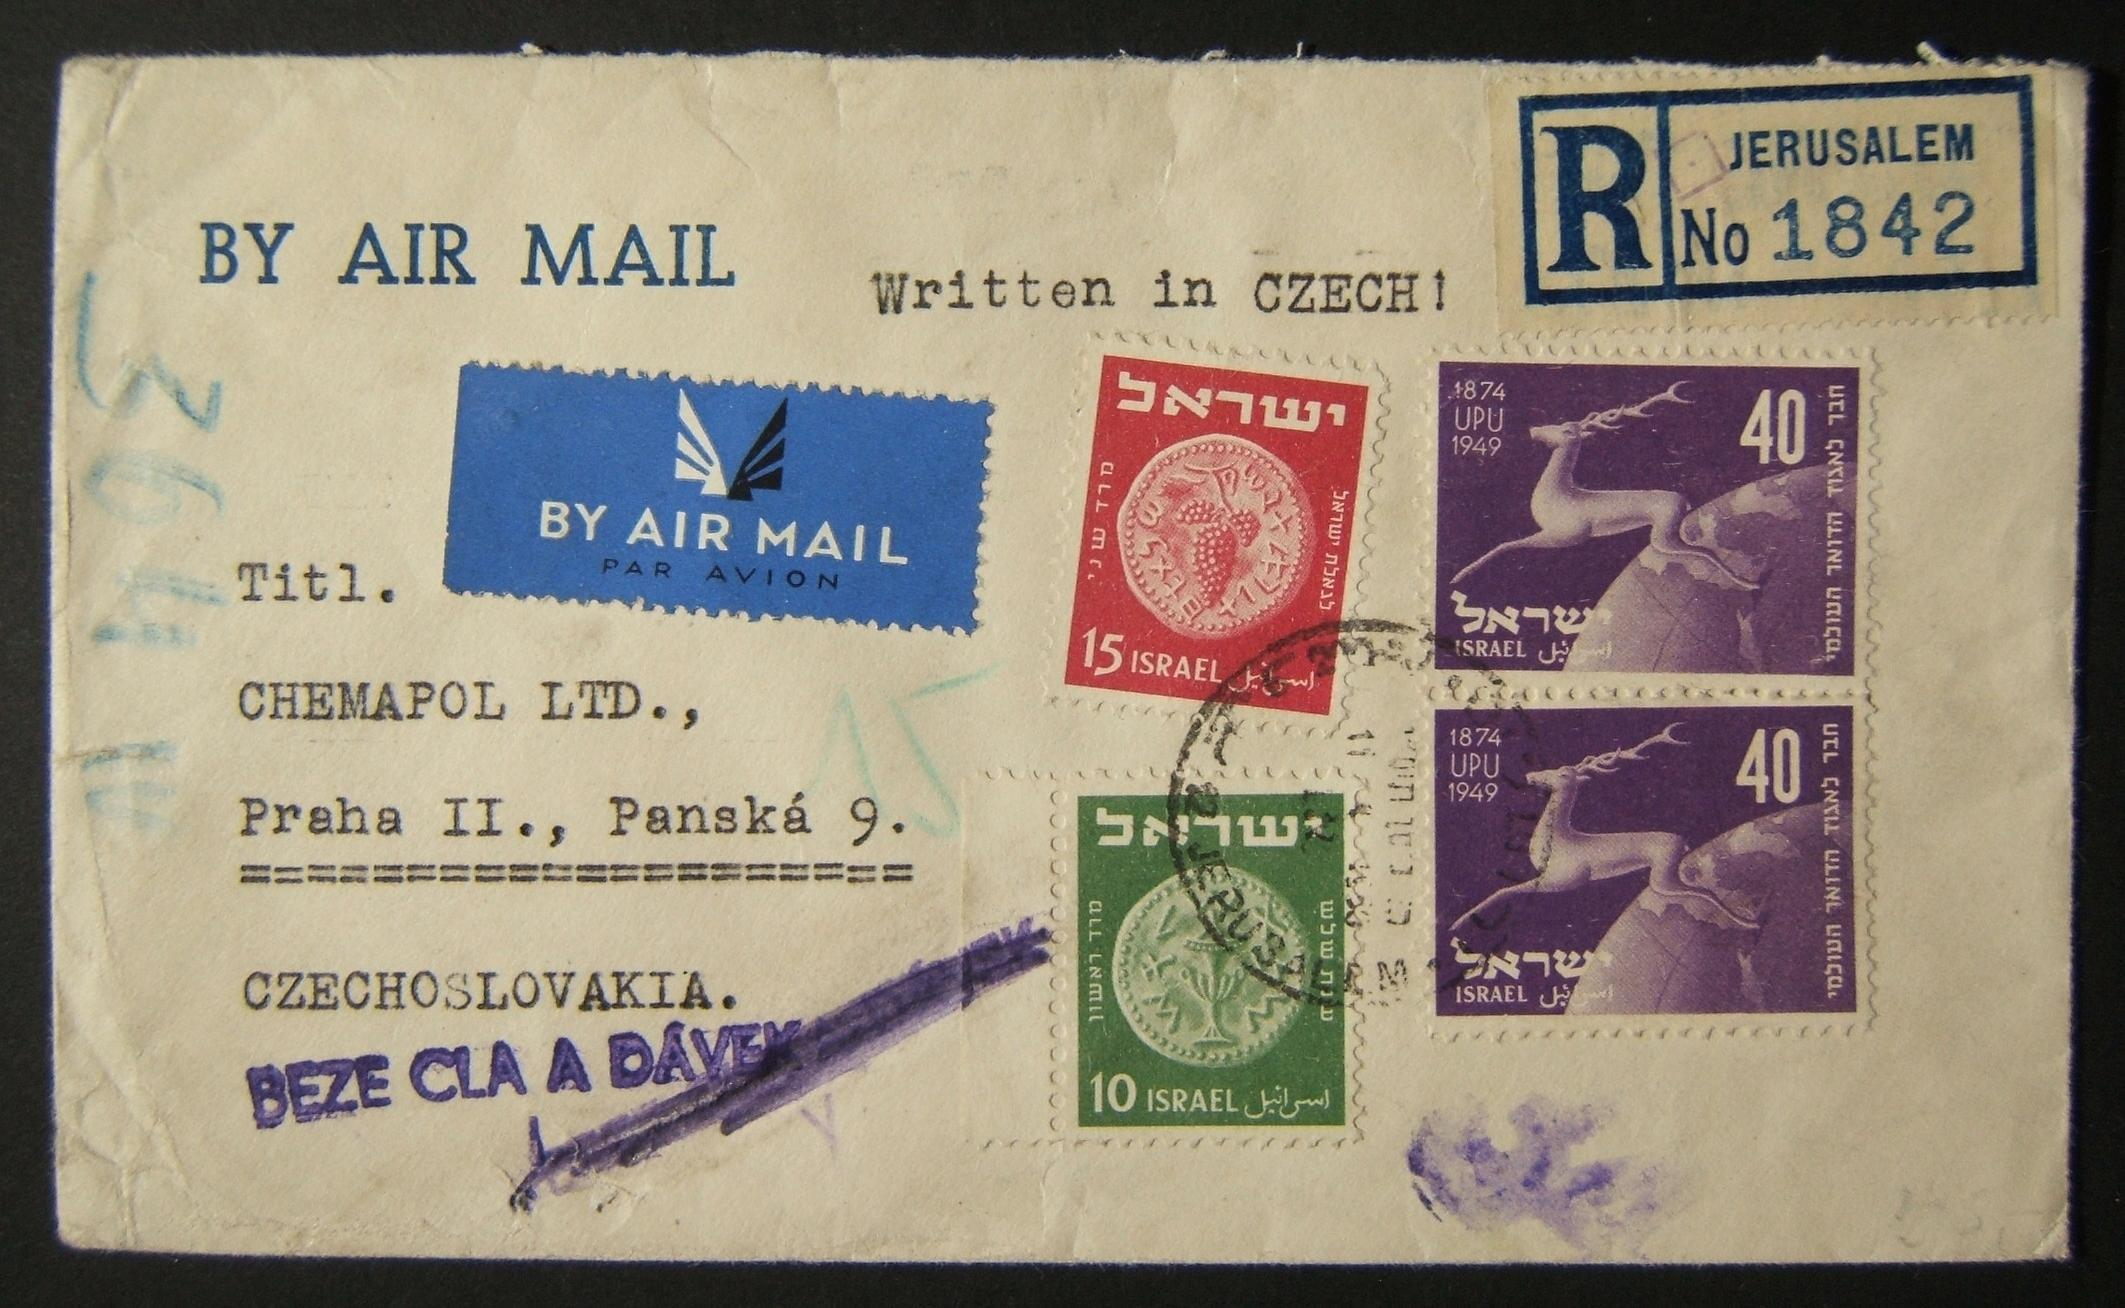 1950 UPU / rates & routes: 11-4-1950 business airmail stationary registered cover ex JERUSALEM to PRAGUE franked 105pr at the FA-2a period rate (40pr letter to Europe + 25pr regist